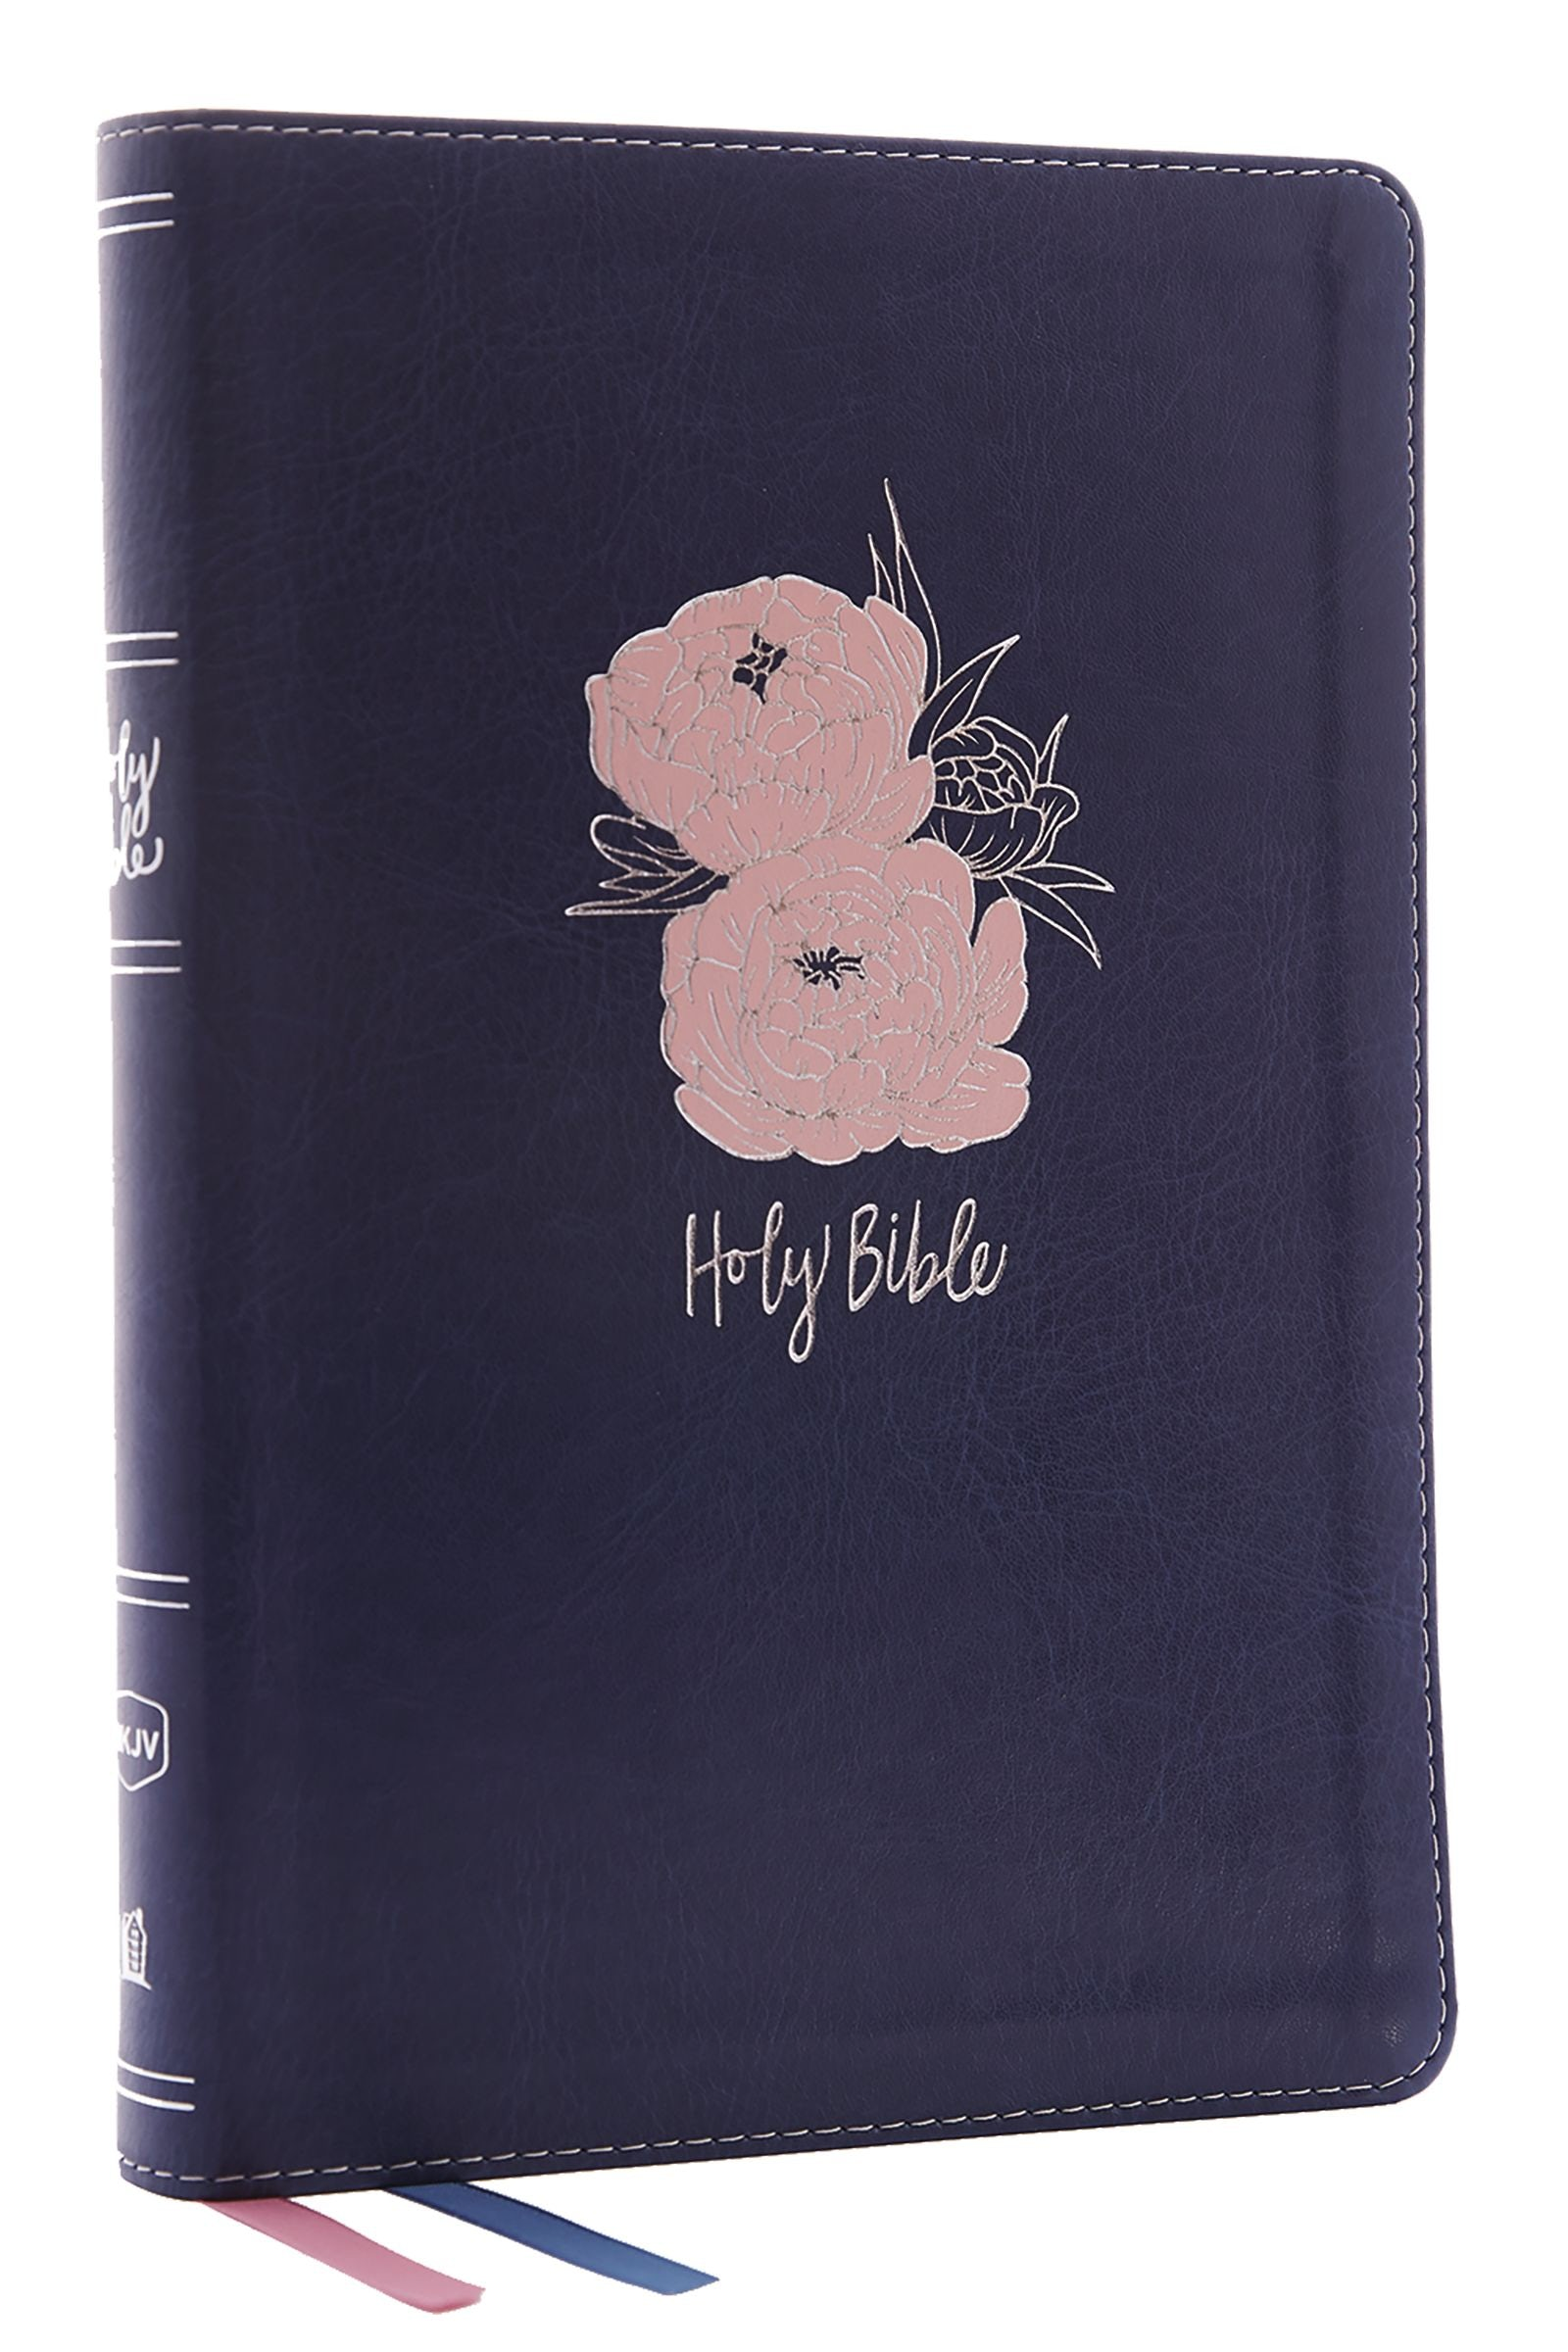 nkjv  thinline bible  large print  leathersoft  blue  pink  red letter edition  comfort print